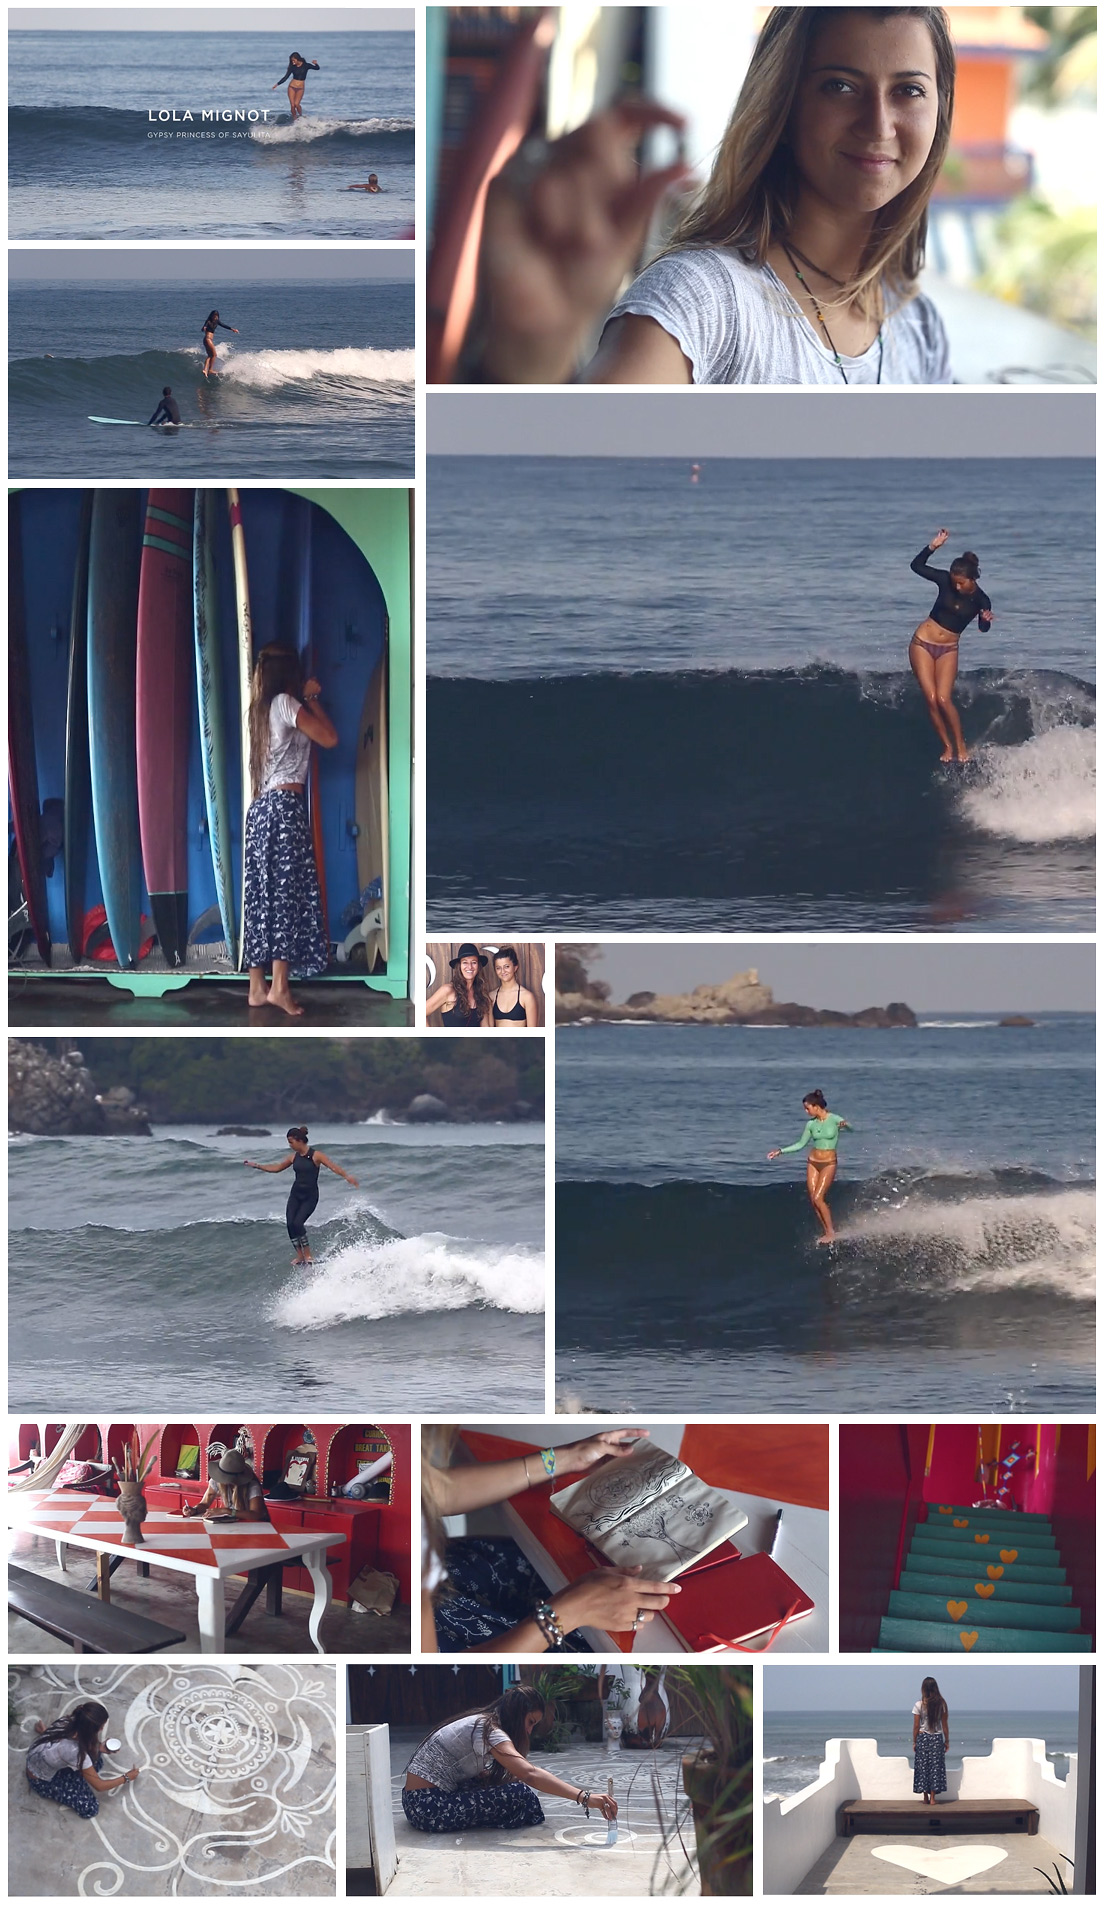 Frame grabs from Ed Fladung's short film, Lola Mignot, Gypsy Princess of Sayulita